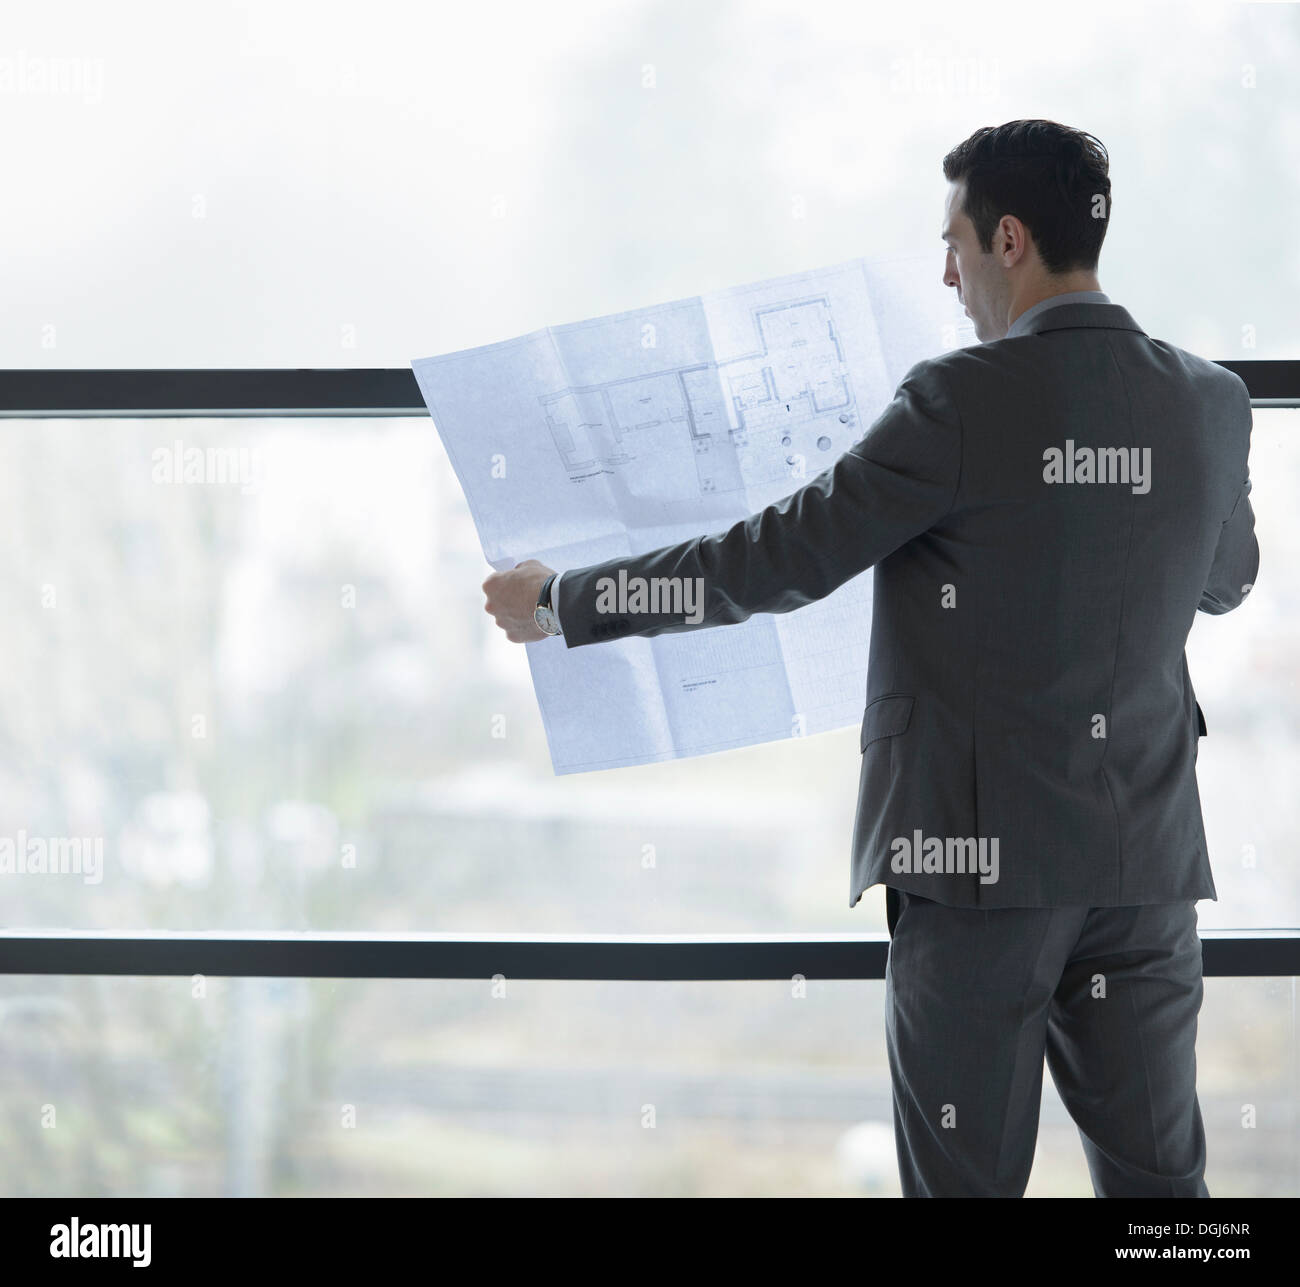 Architect inspecting plans by office window - Stock Image